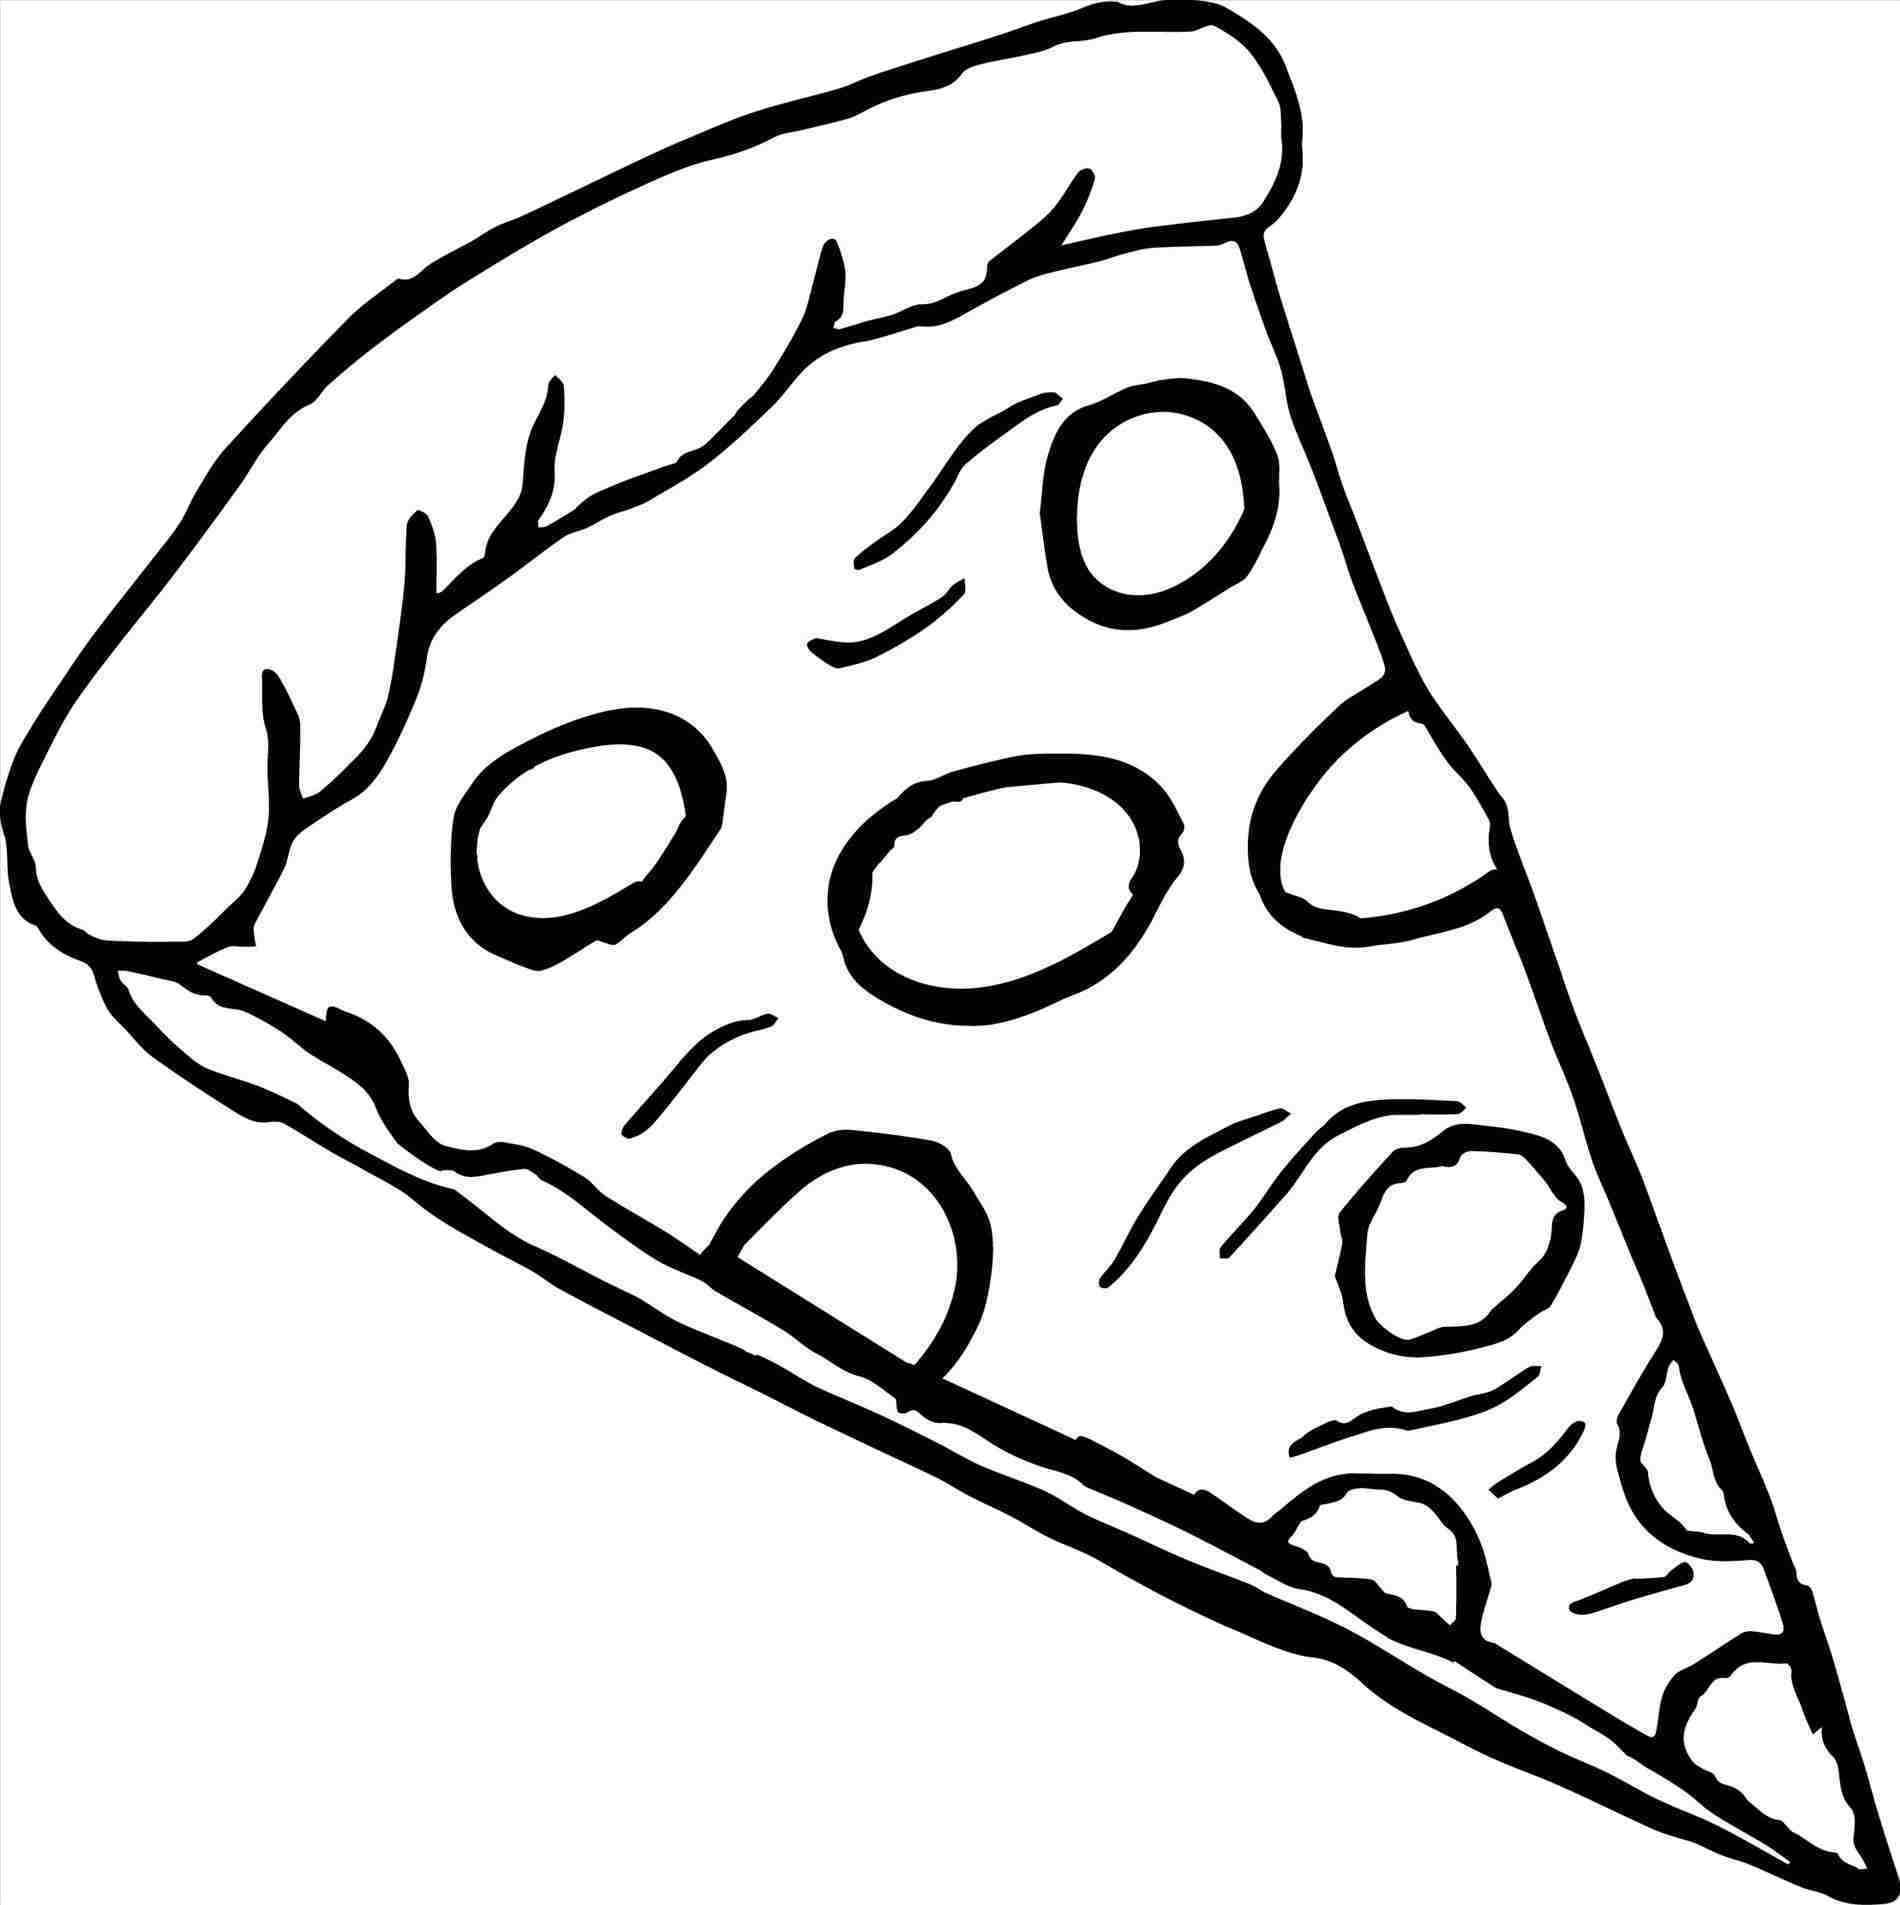 Library of to order pizza image black and white library ...